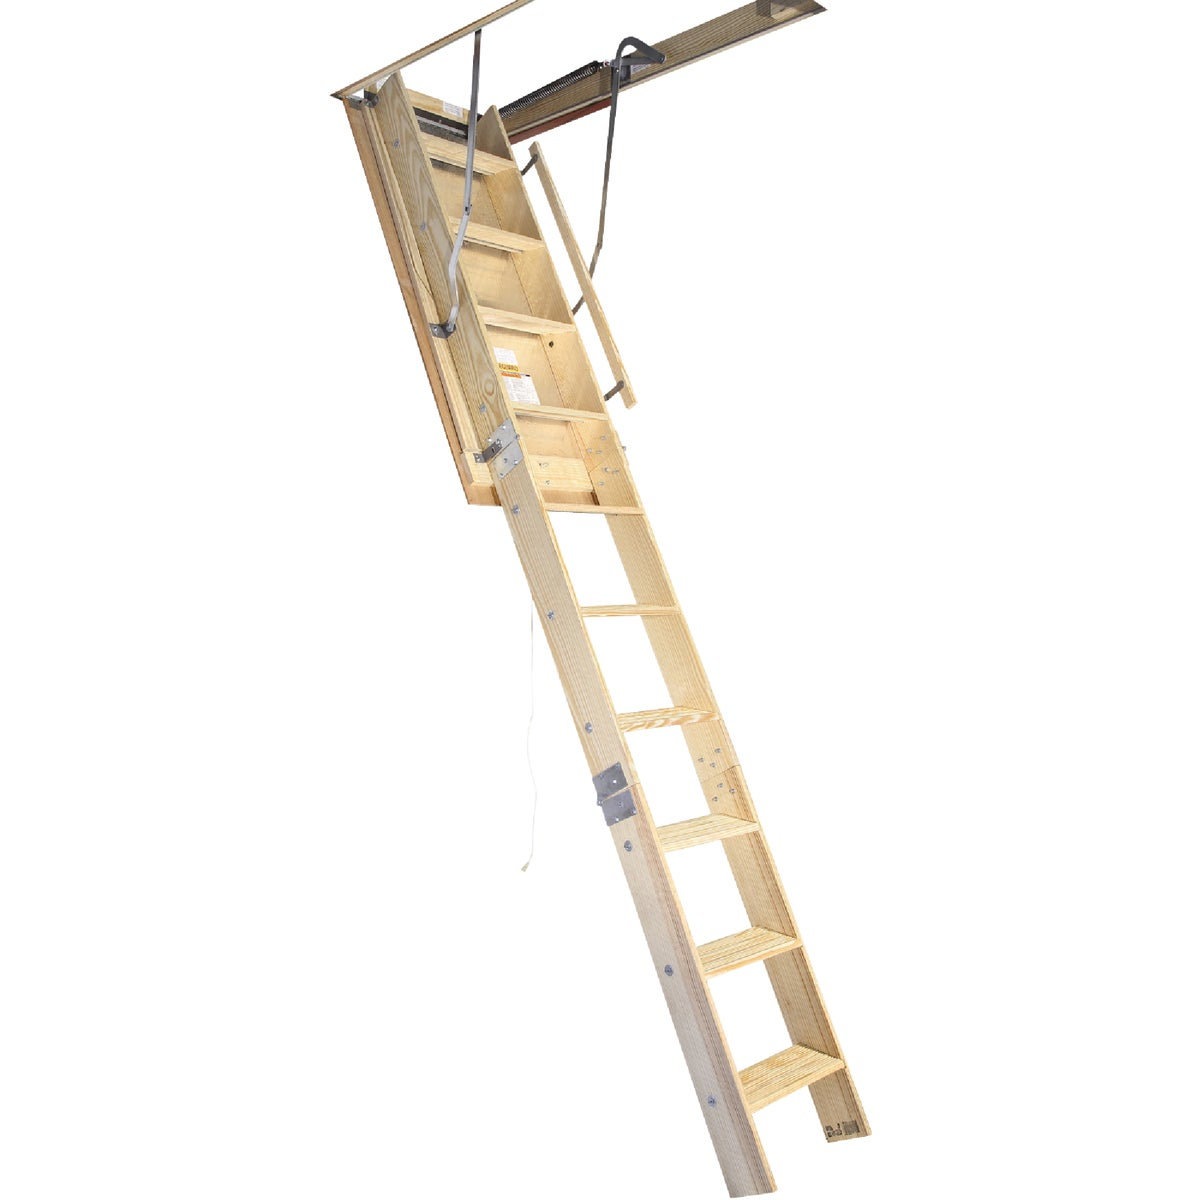 25X105 FIRE ATTIC STAIR - AE89F by Louisville Ladder